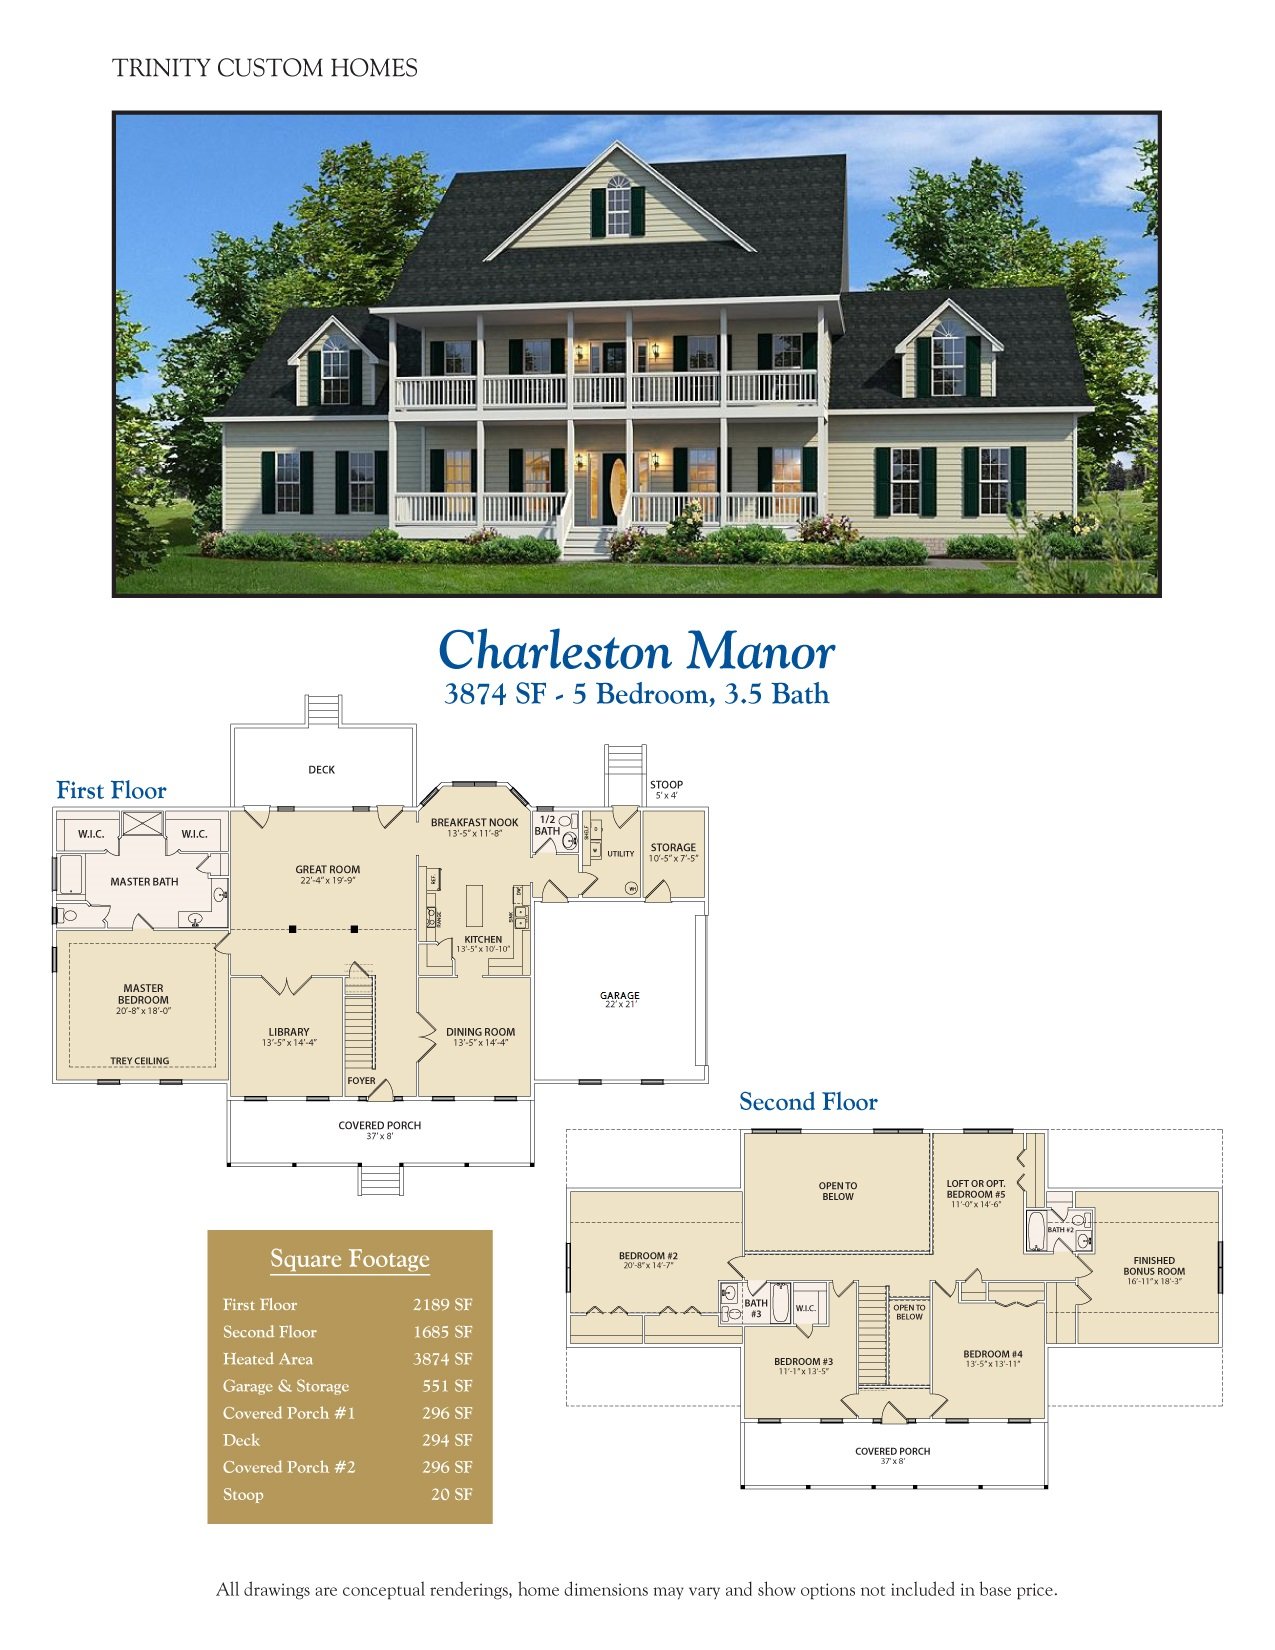 floor plans trinity custom homes georgia view brochure